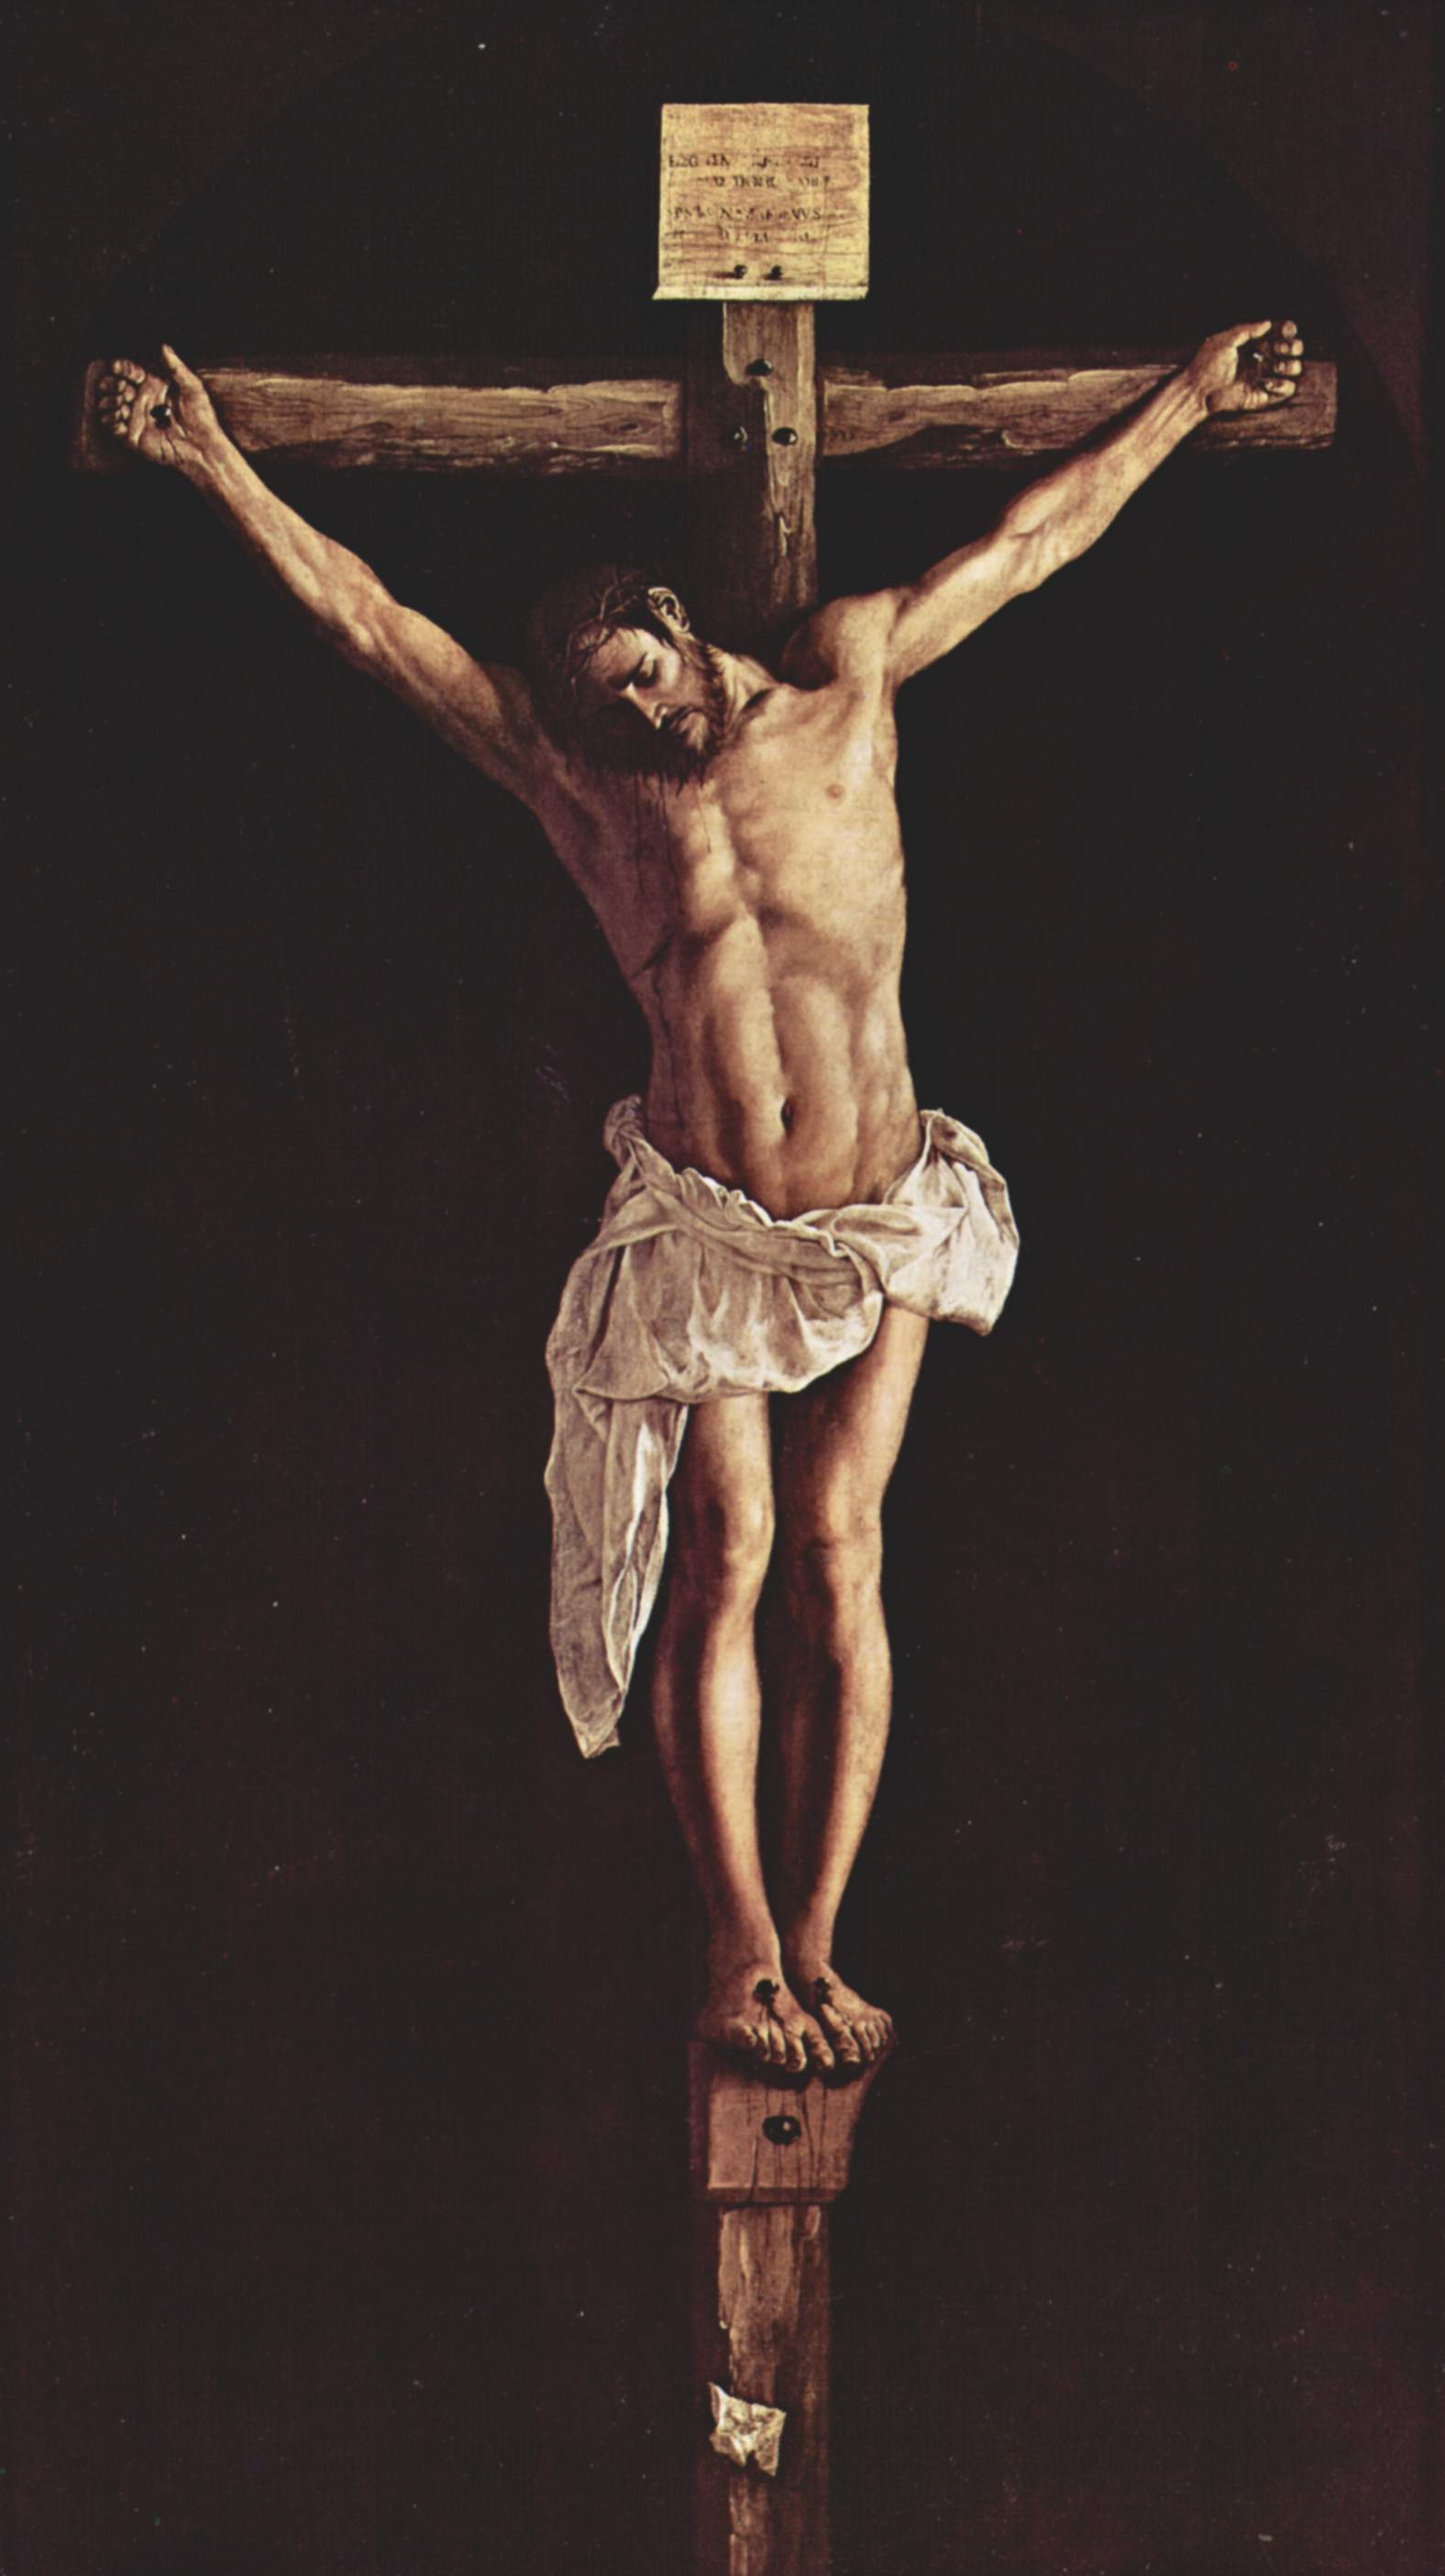 photo courtesy : http://uploads4.wikiart.org/images/francisco-zurbaran/christ-on-the-cross-1627.jpg